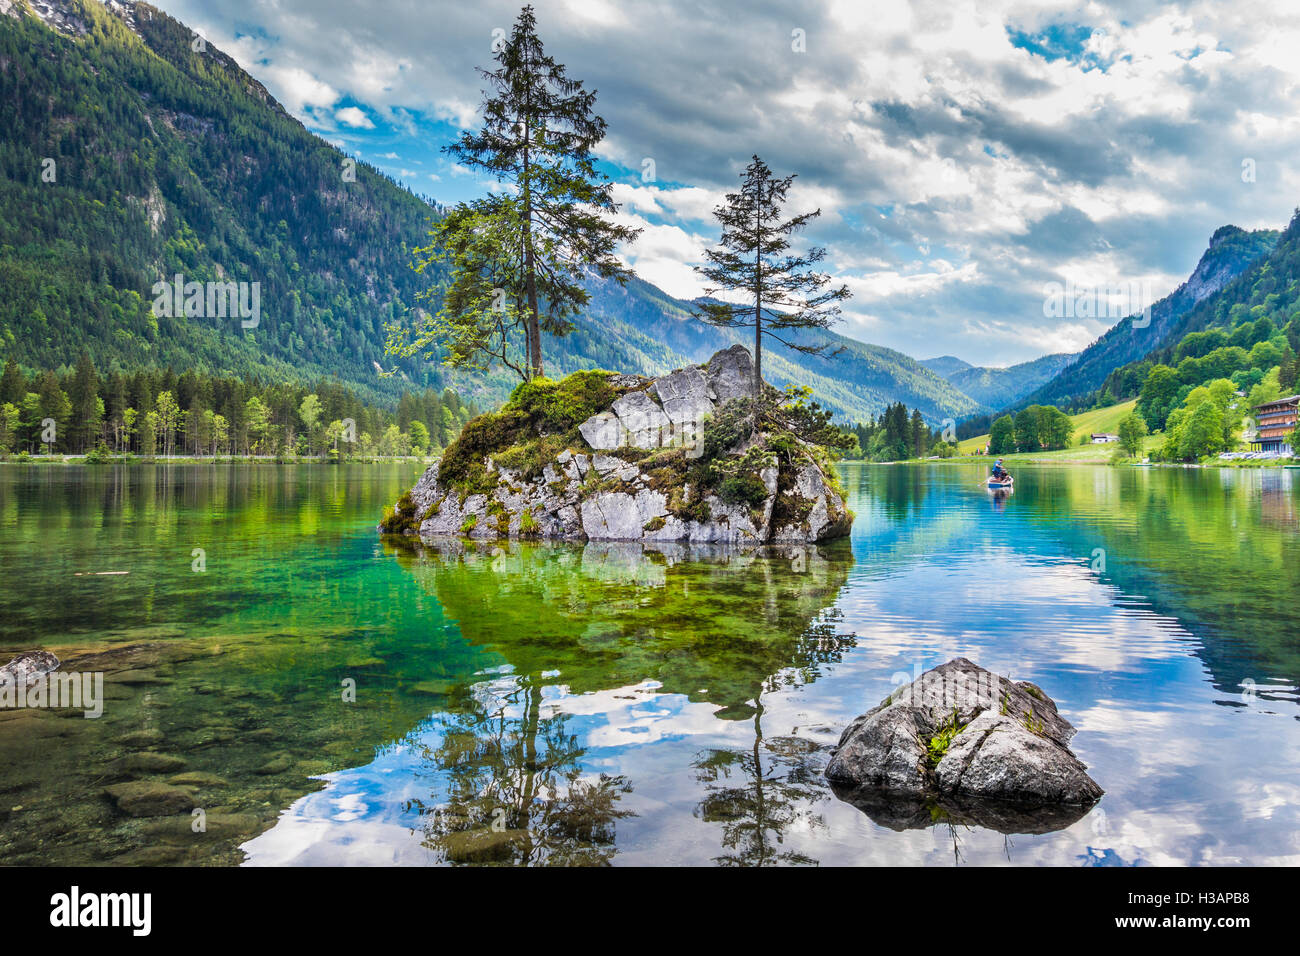 Beautiful scene of trees on a rock island in idyllic scenery at charming Lake Hintersee, Nationalpark Berchtesgadener - Stock Image